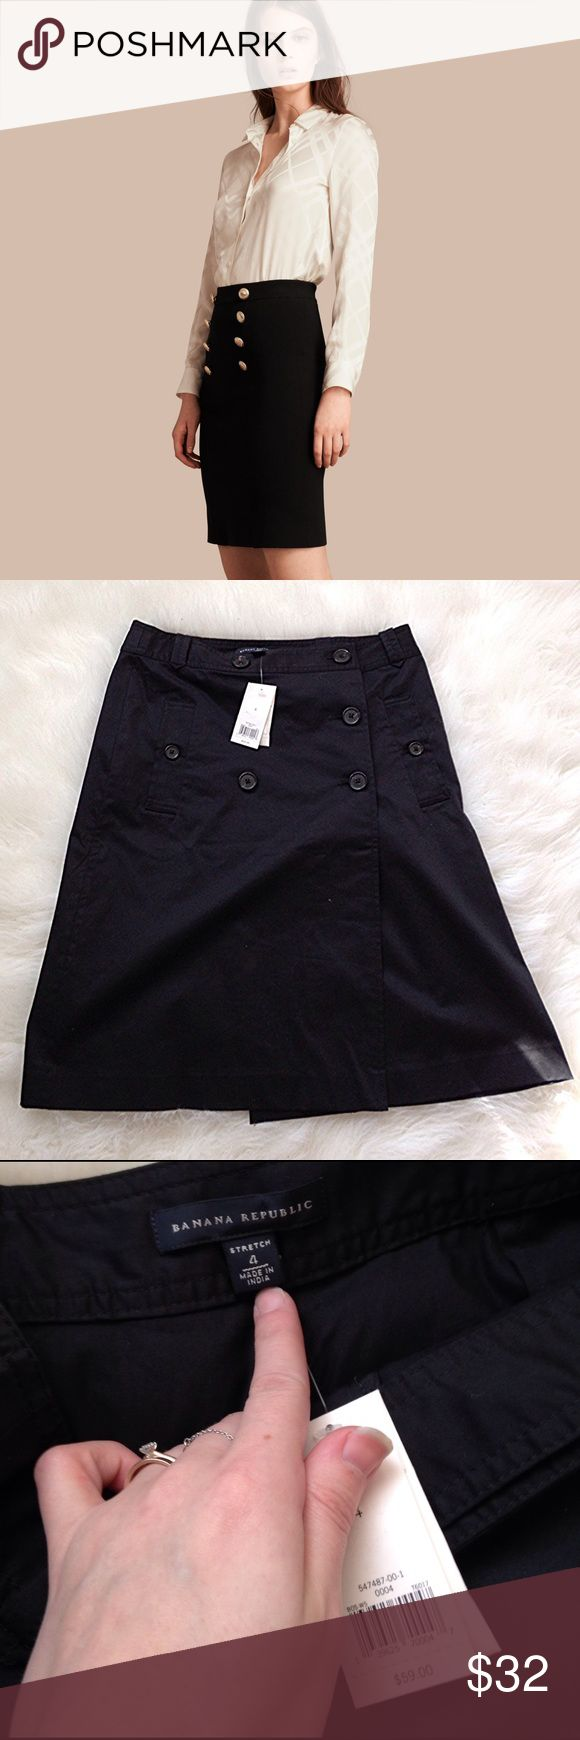 NWT banana republic military style skirt Stock photo is NOT what I'm selling but more to give you an outfit visual, this is a brand new with tags attached banana republic military style black skirt, size 4 belt loops around waist to add more to the flair Banana Republic Skirts Midi